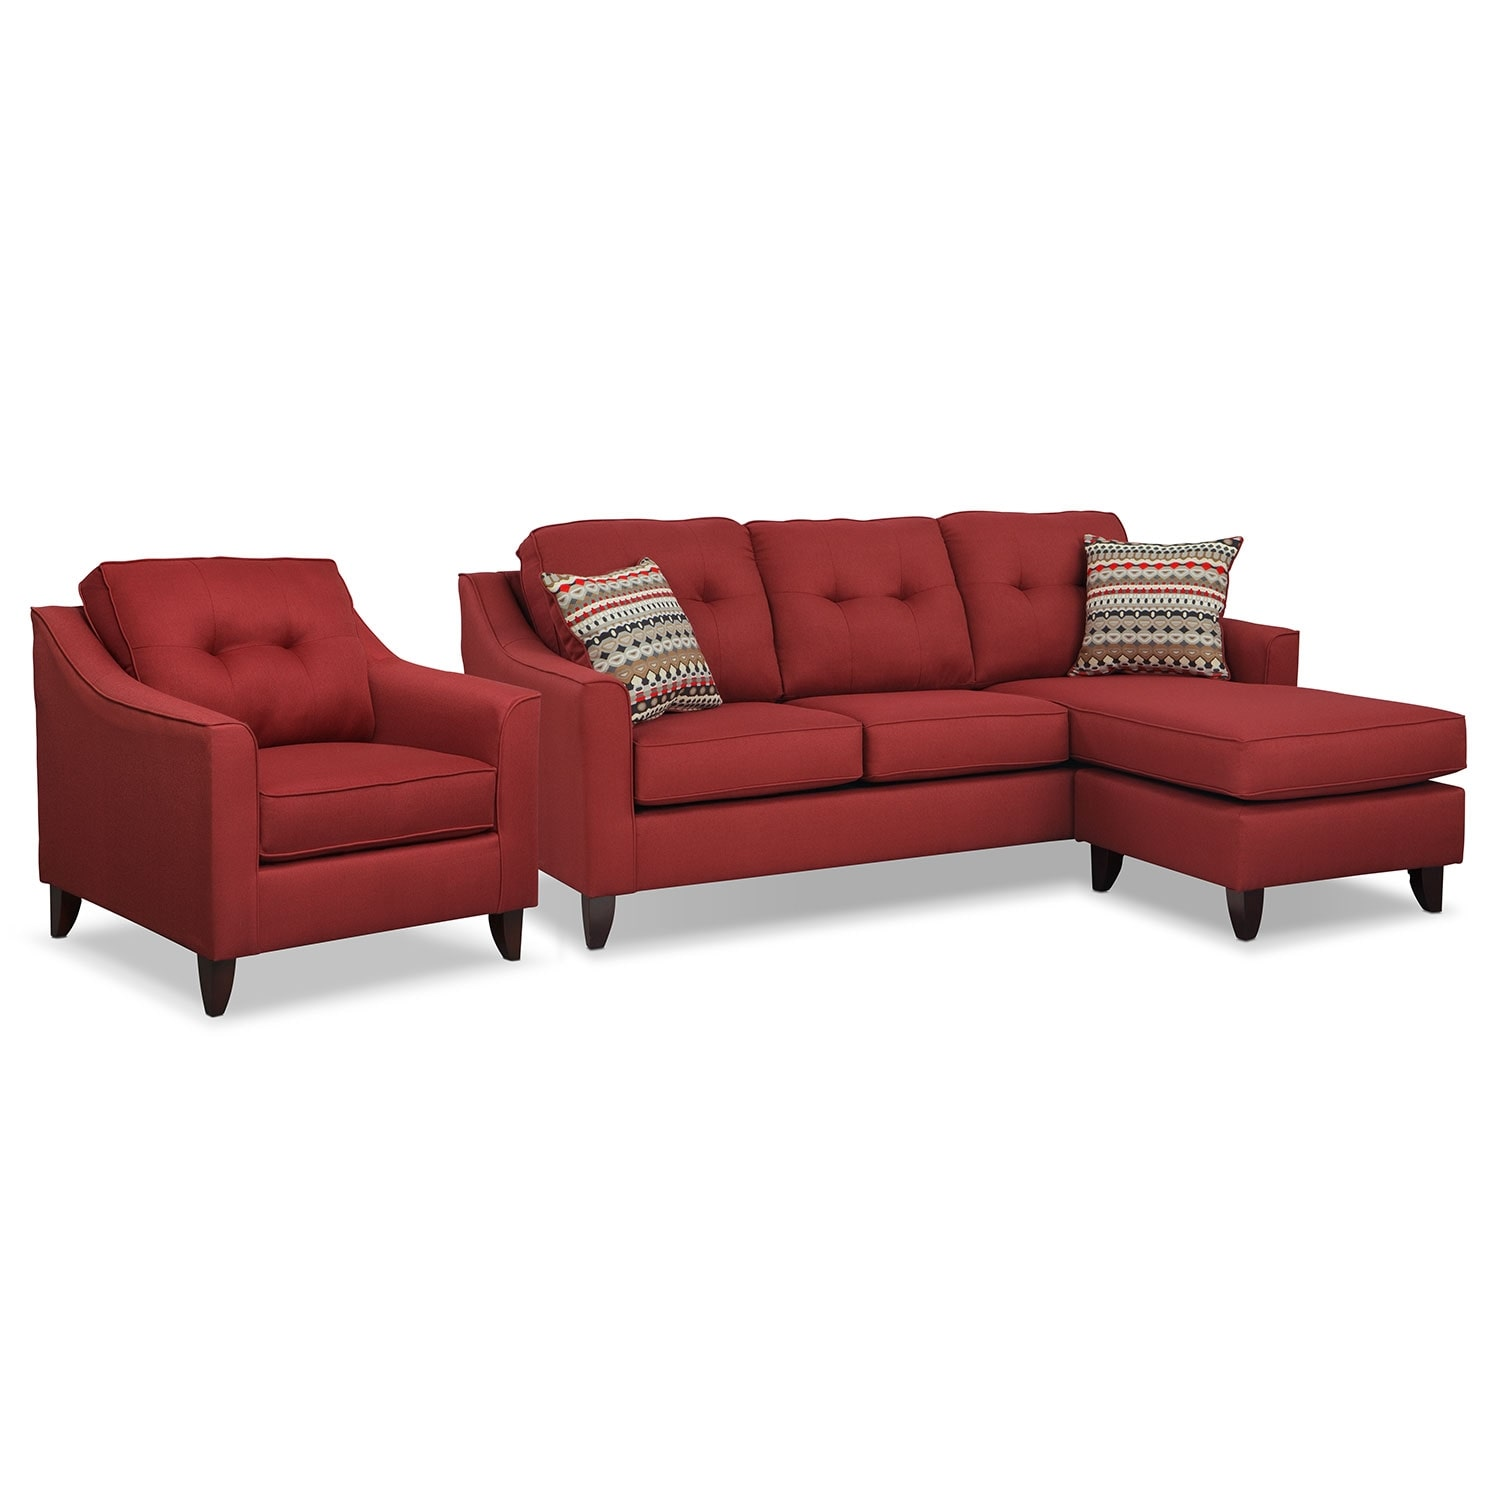 Marco Chaise Sofa and Chair Set - Red